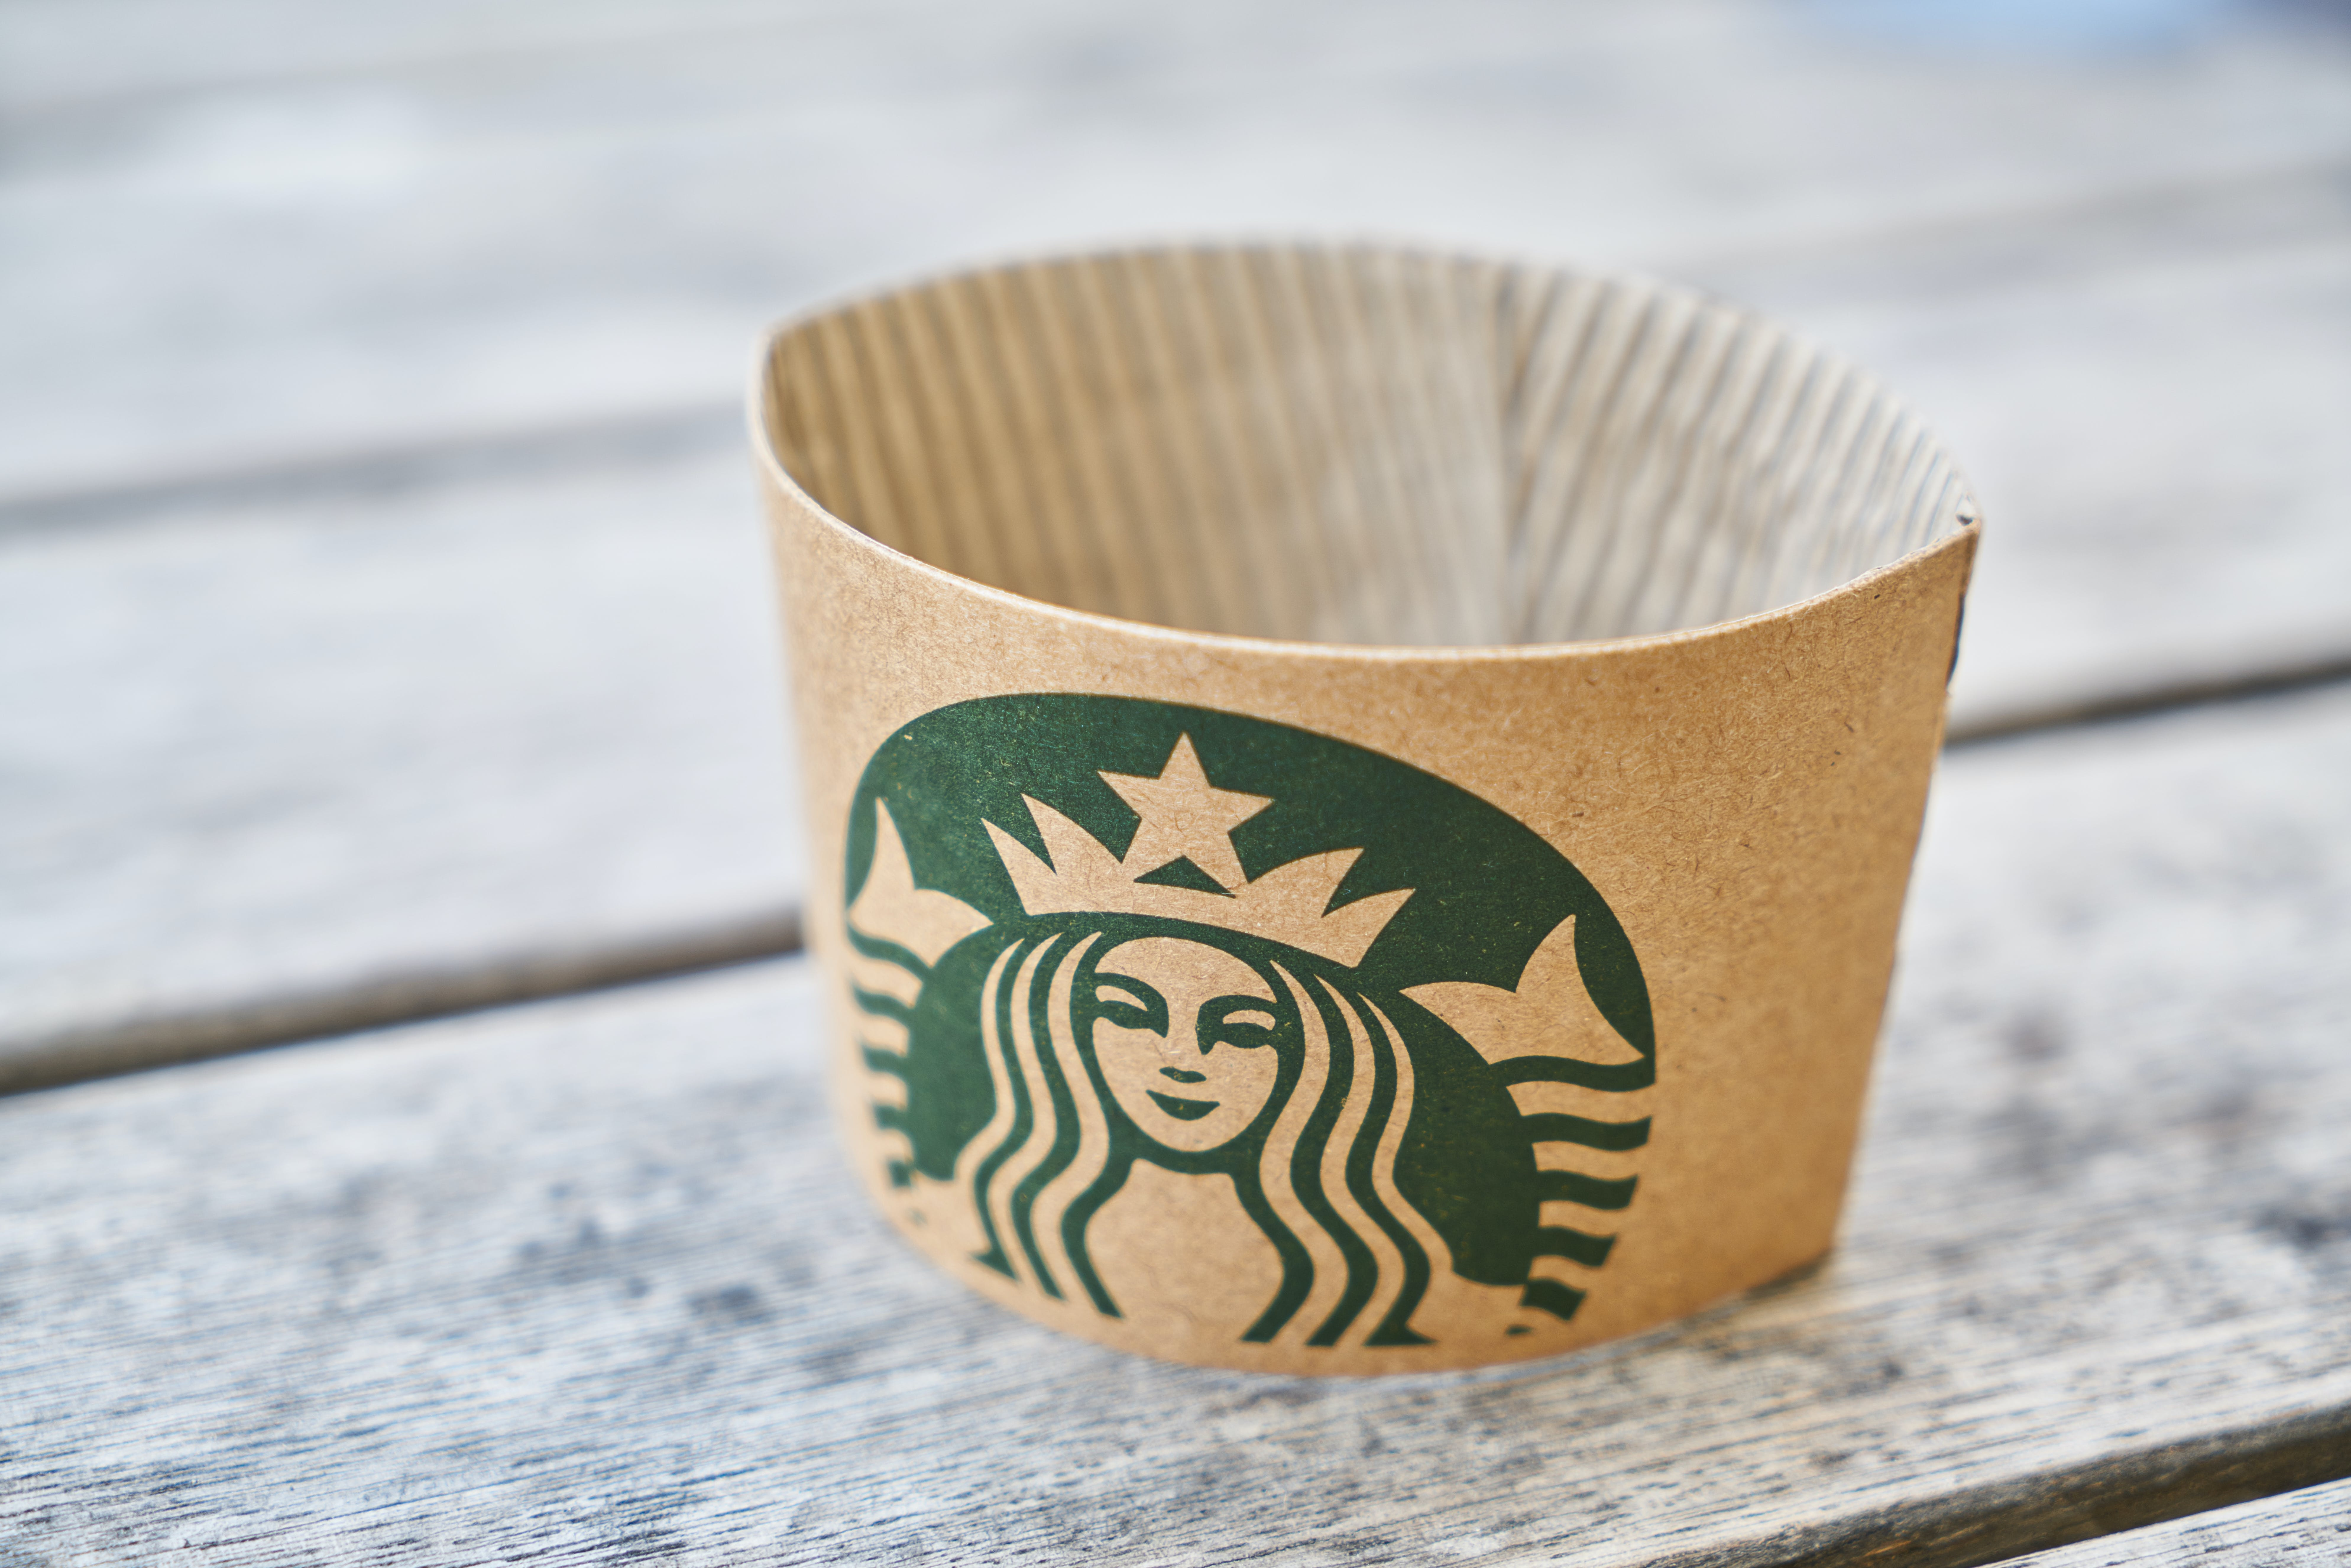 Brown Starbucks Paper on Gray Wooden Surface